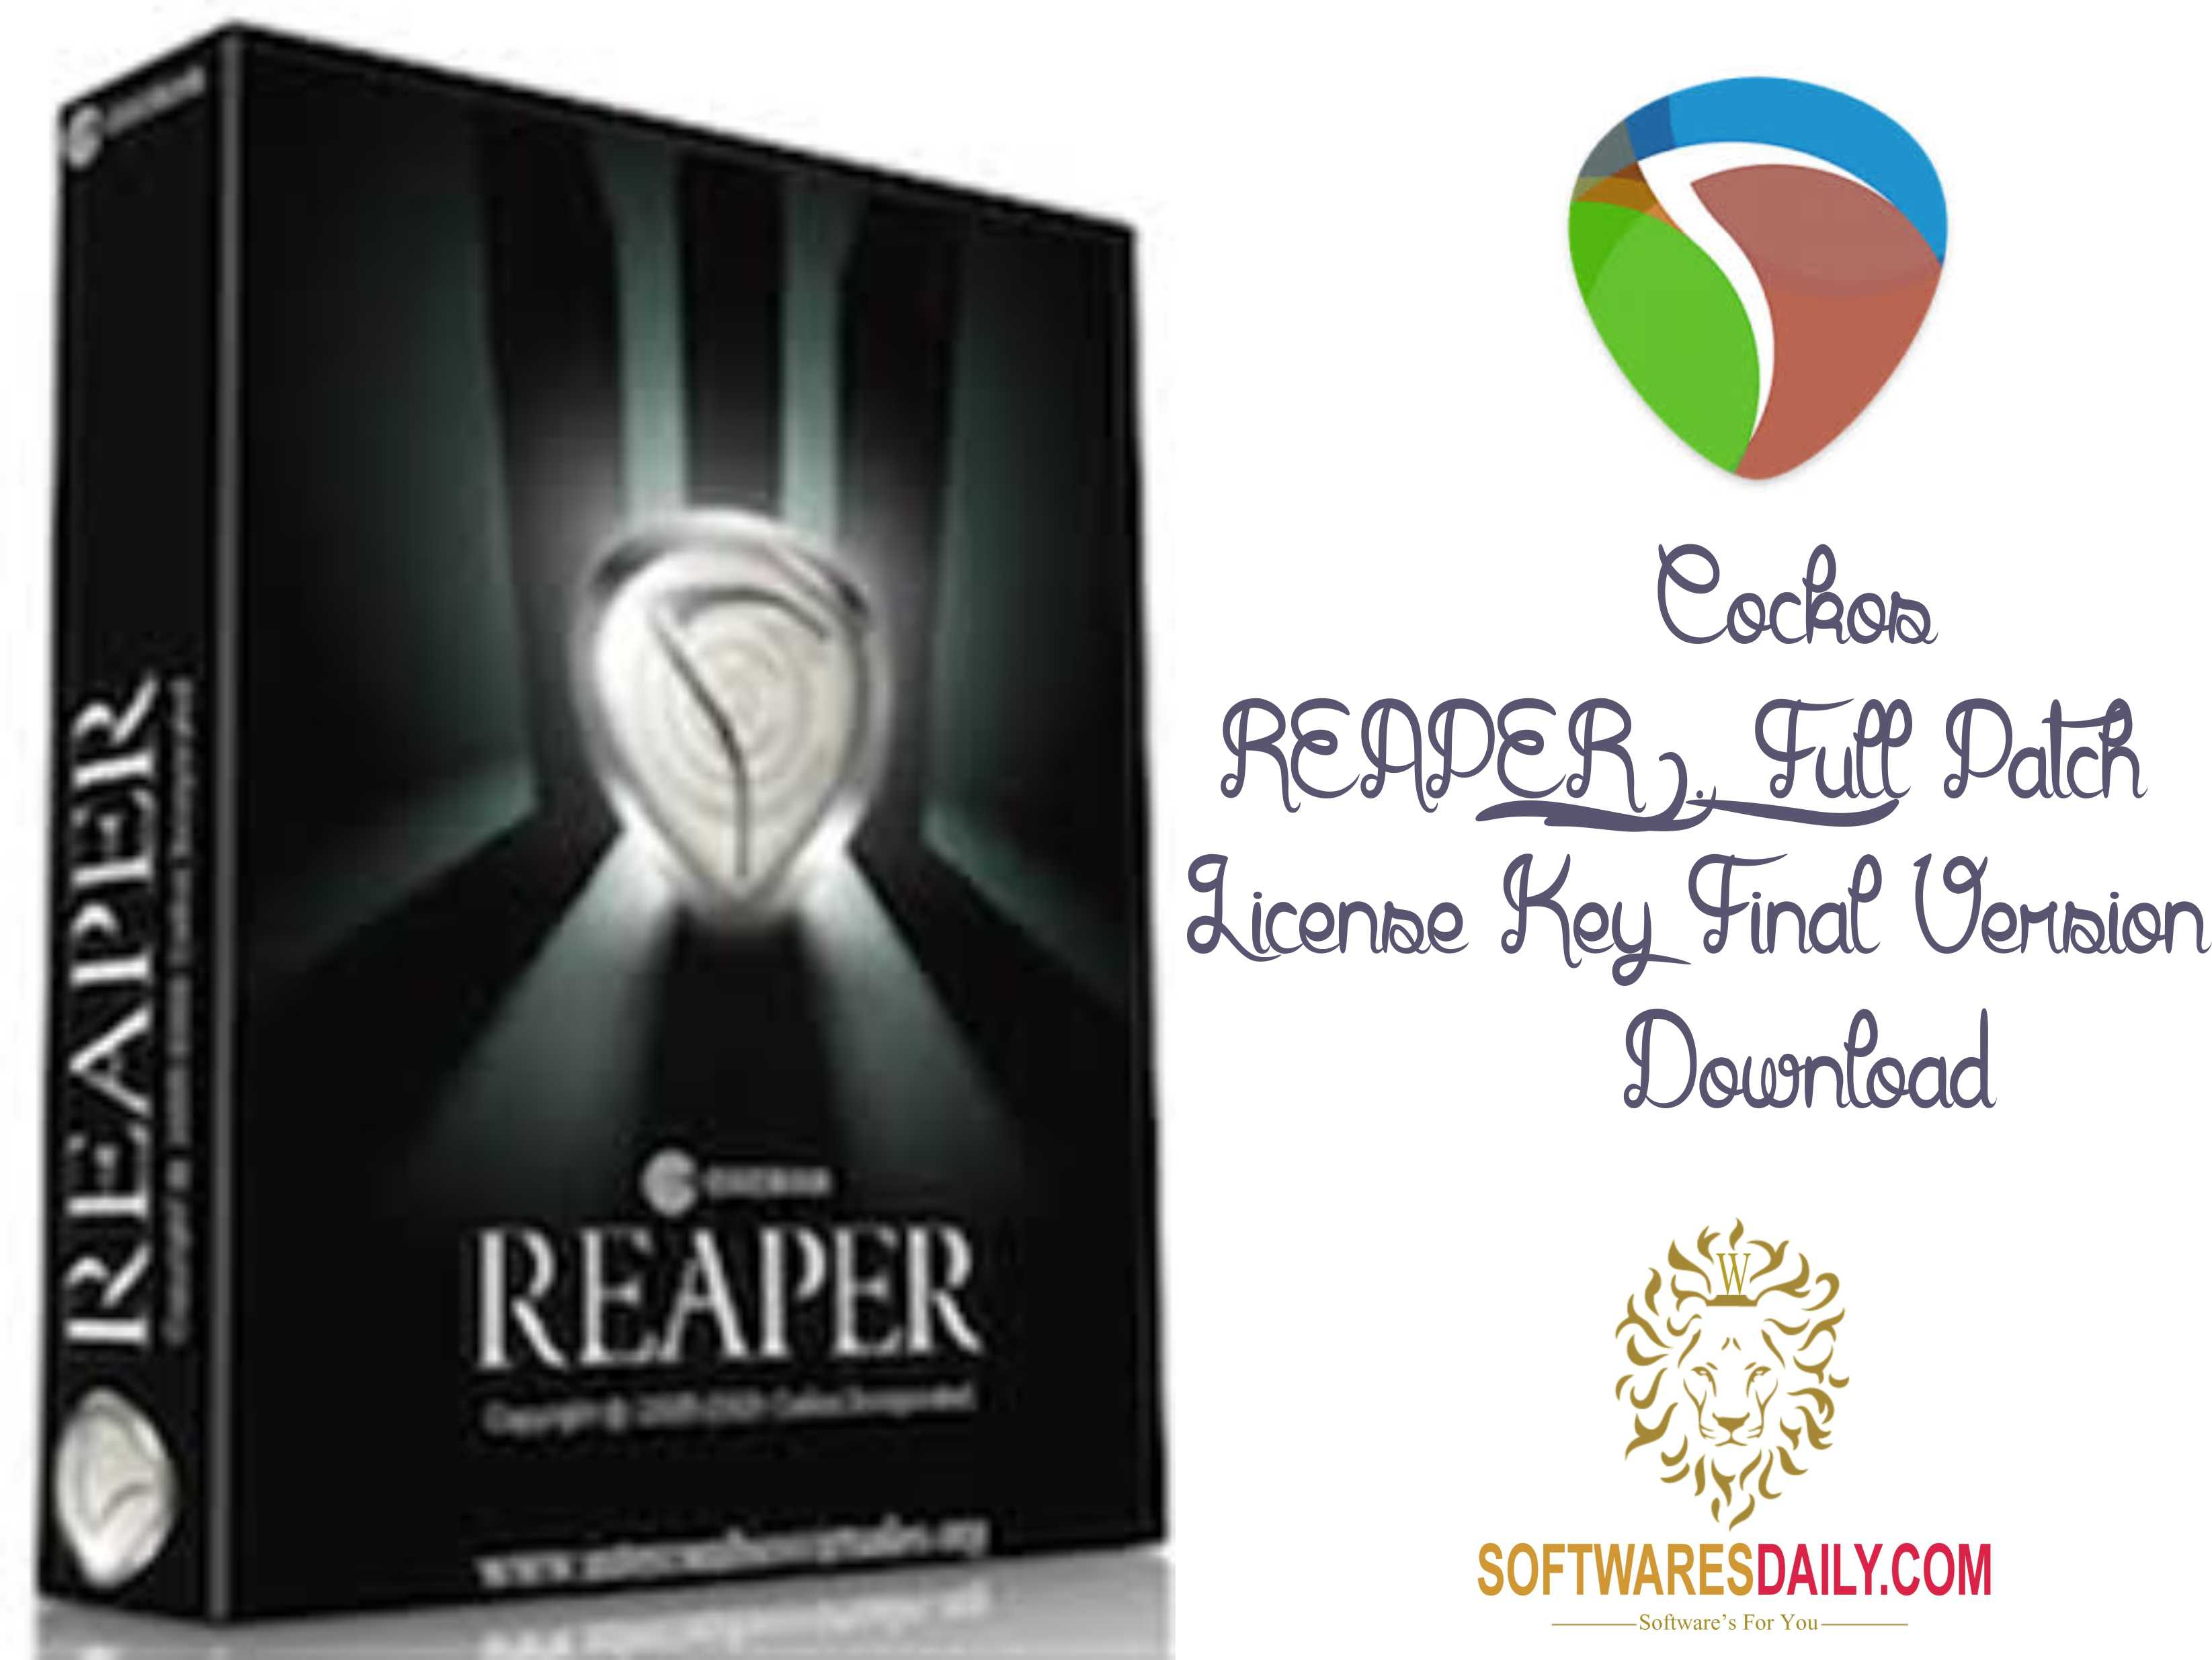 Cockos REAPER 6.09 Crack Patch & License Key Final 2020 ...